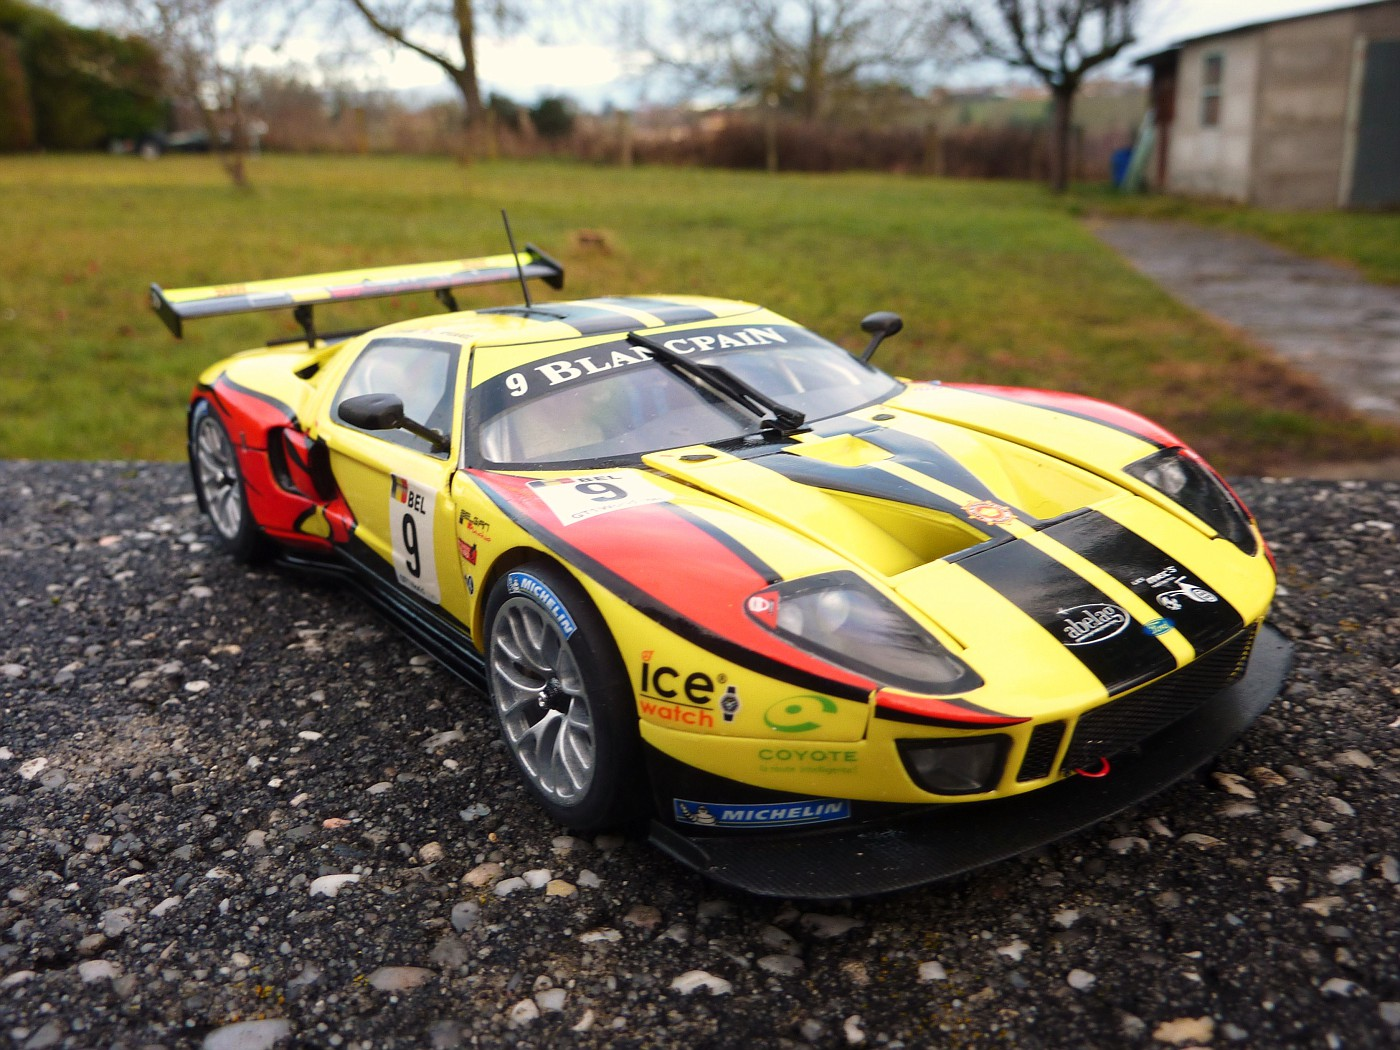 Ford gt1 Belgian racing Inales2FordGt1BelgianRacing006-vi